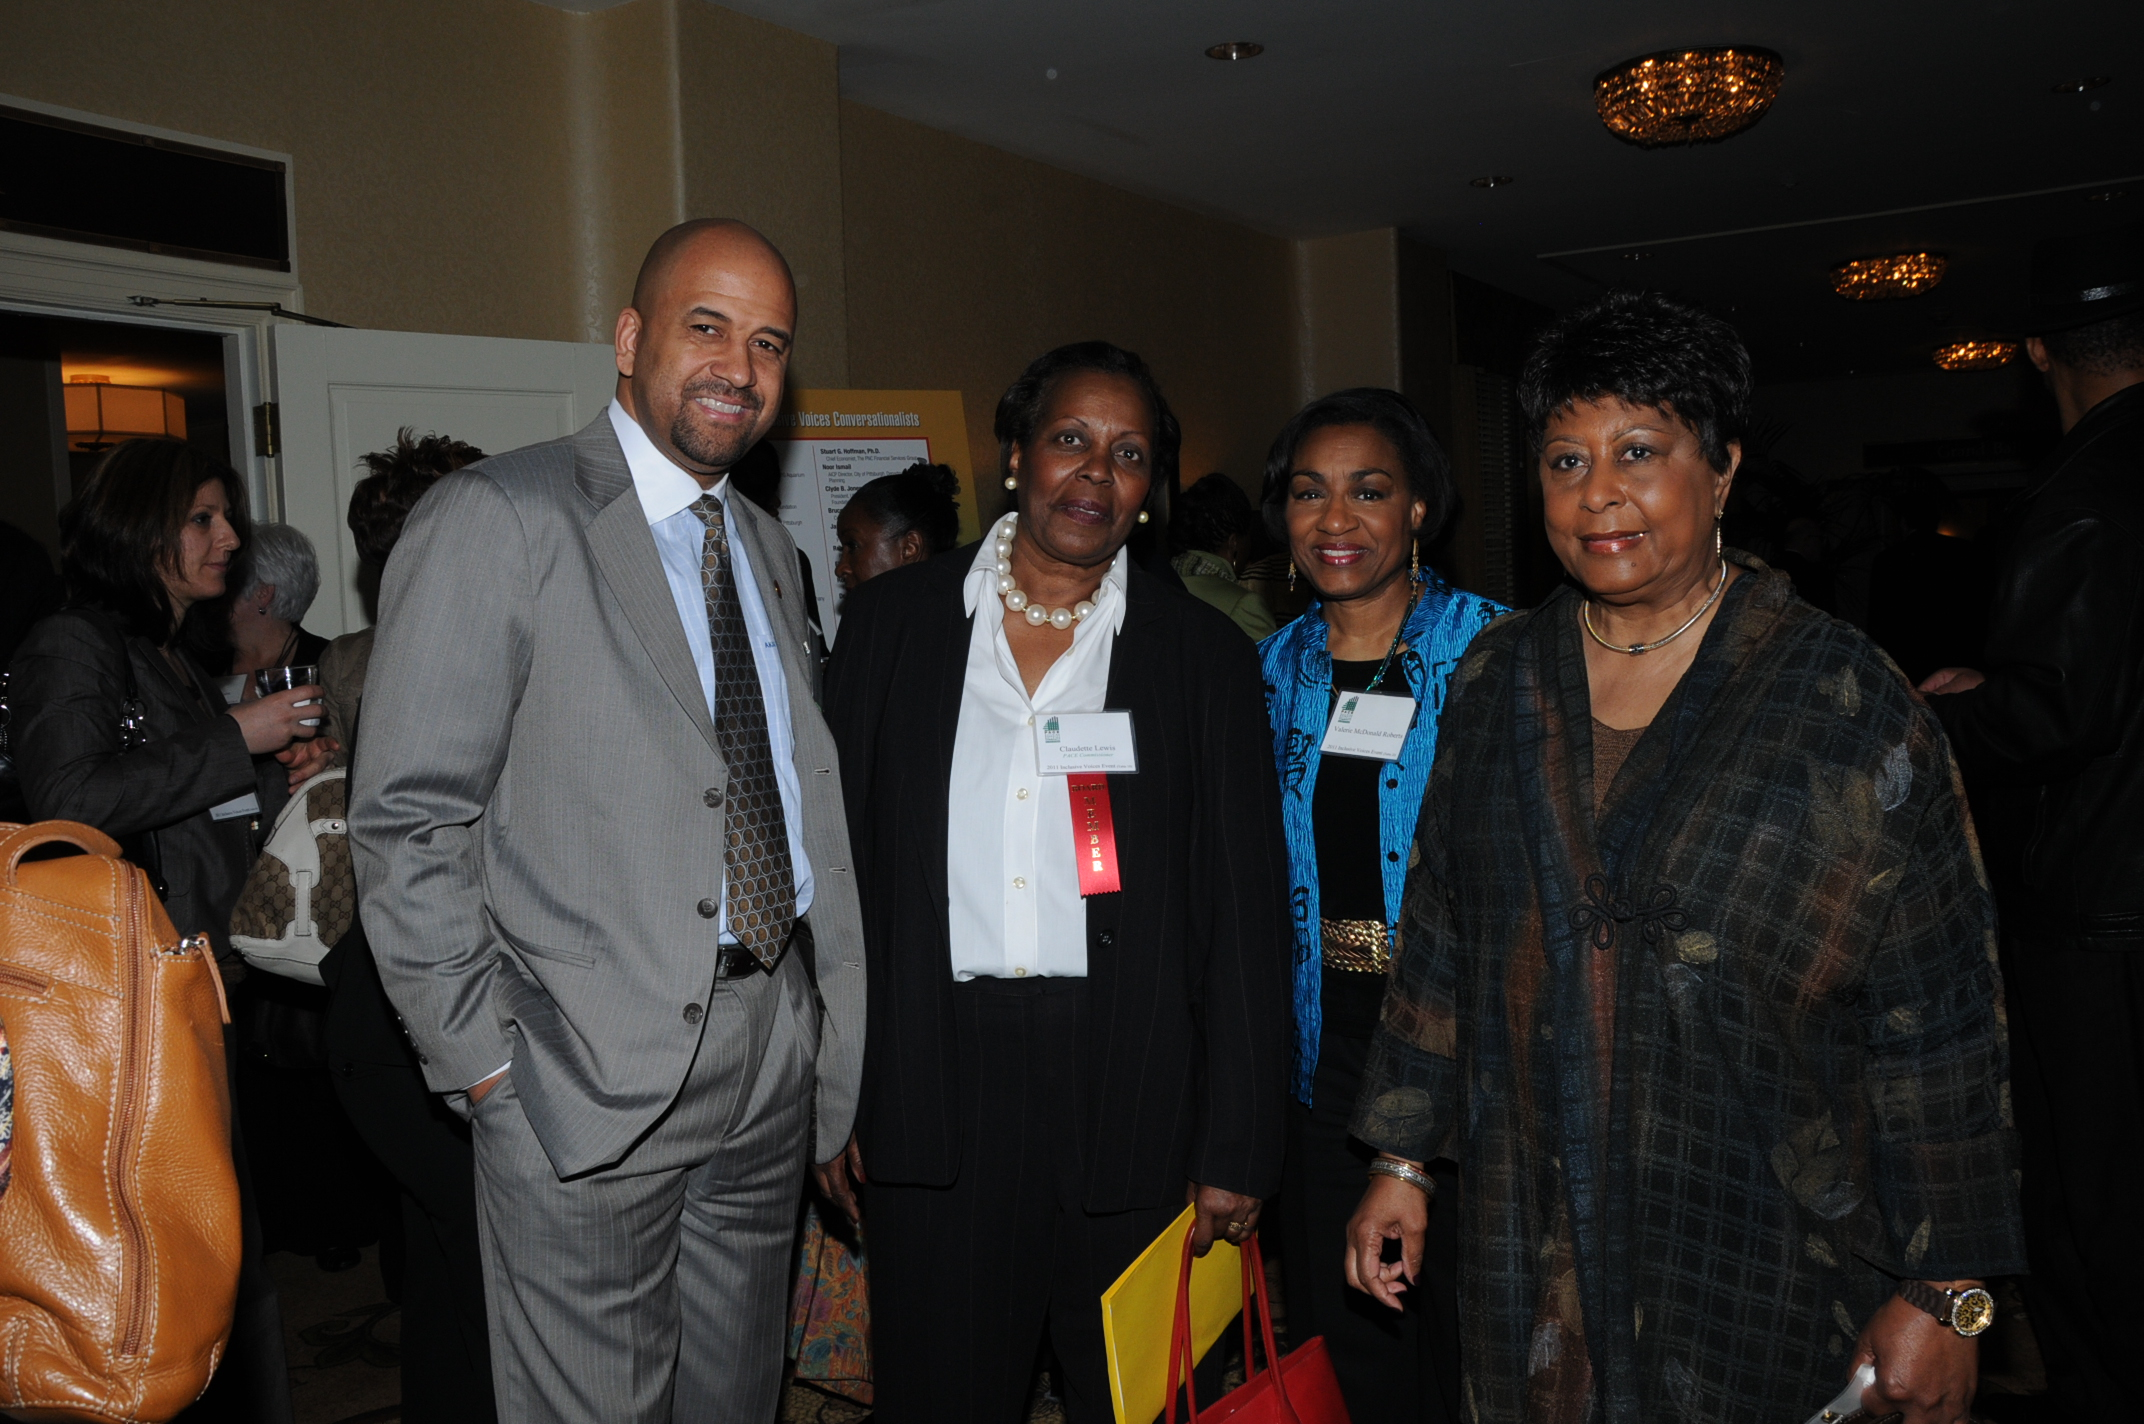 Andre Kimo Stone Guess, Claudette Lewis & Valerie McDonald Roberts.JPG